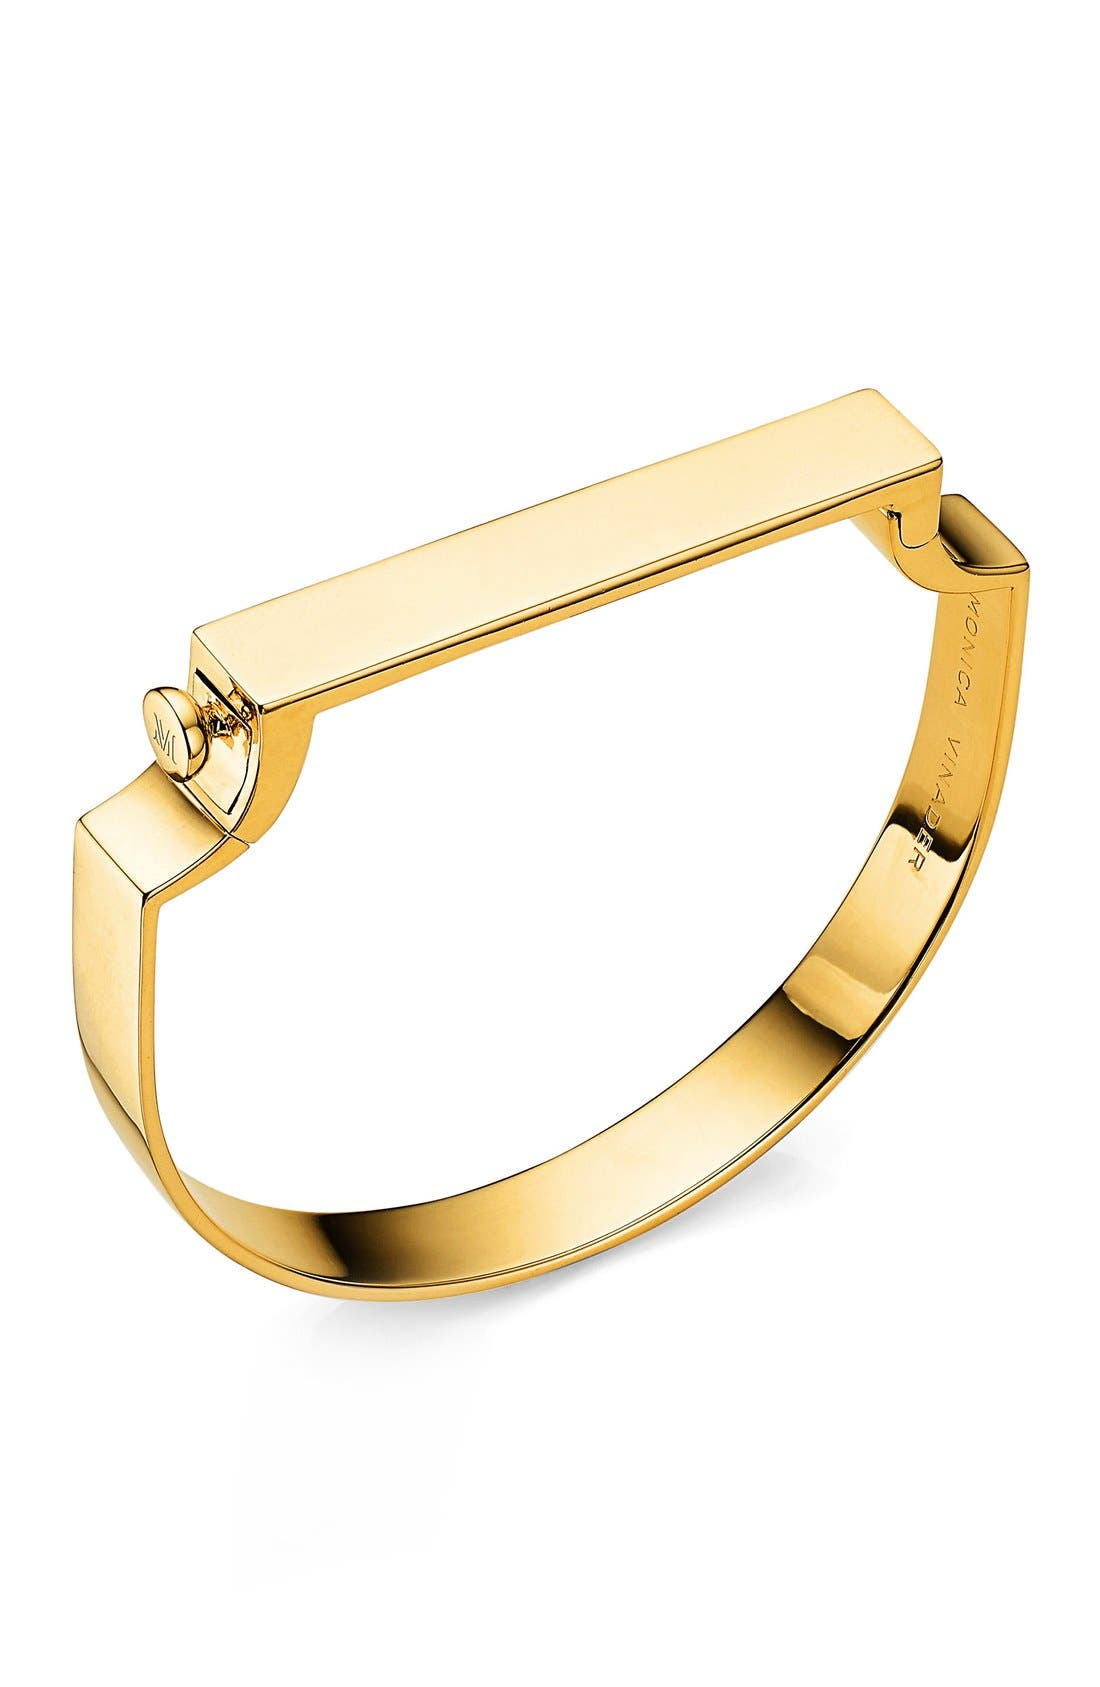 Monica Vinader Signature Petite Bangle